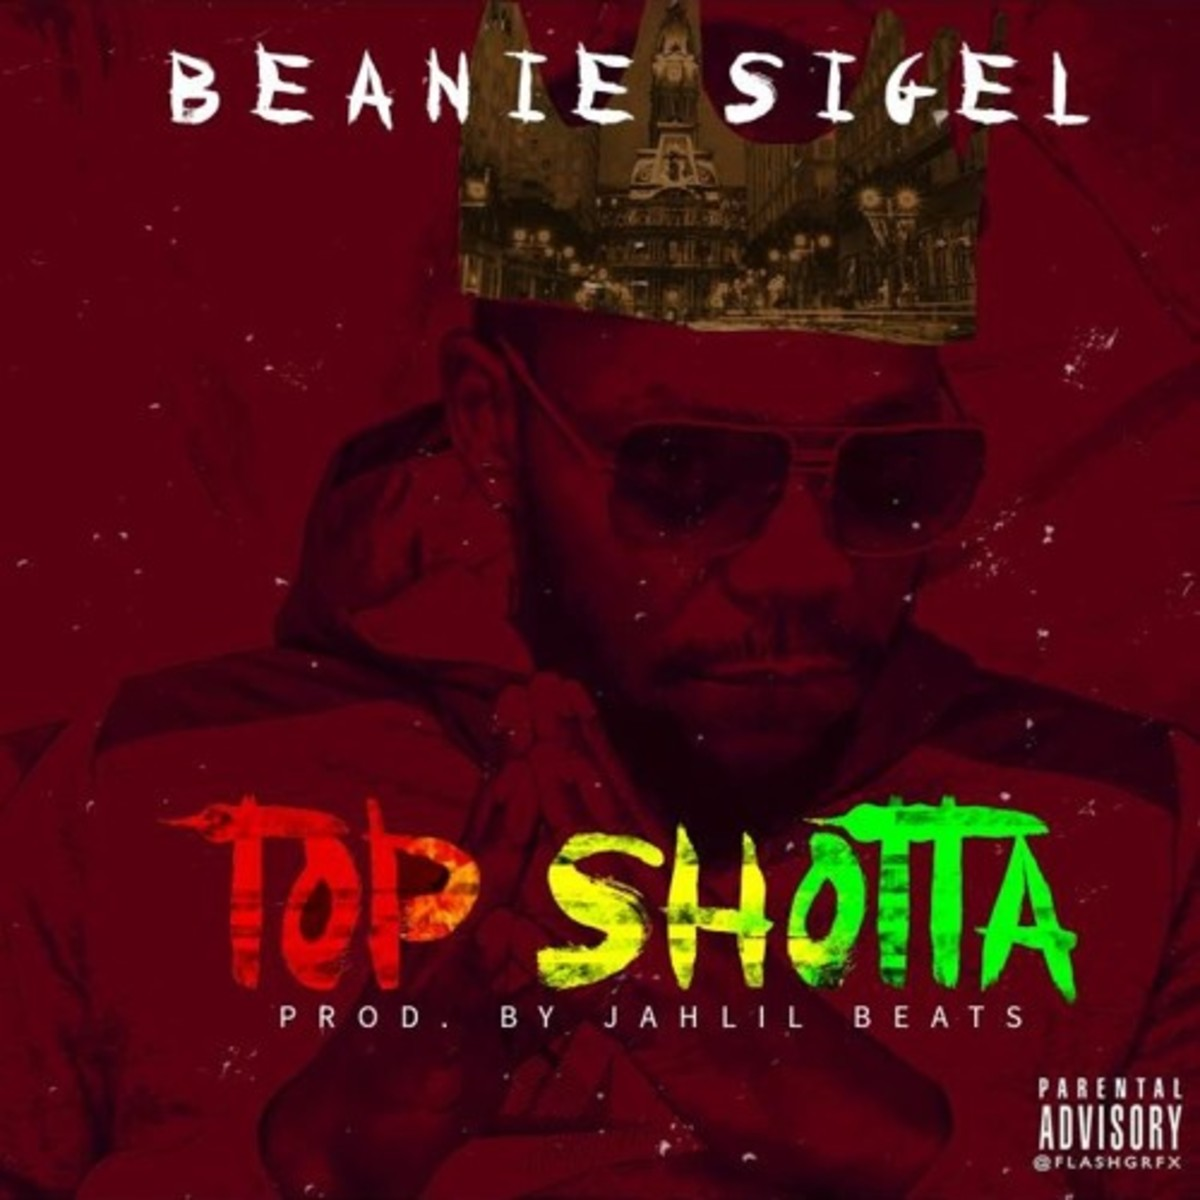 beanie-sigel-top-shotta.jpg